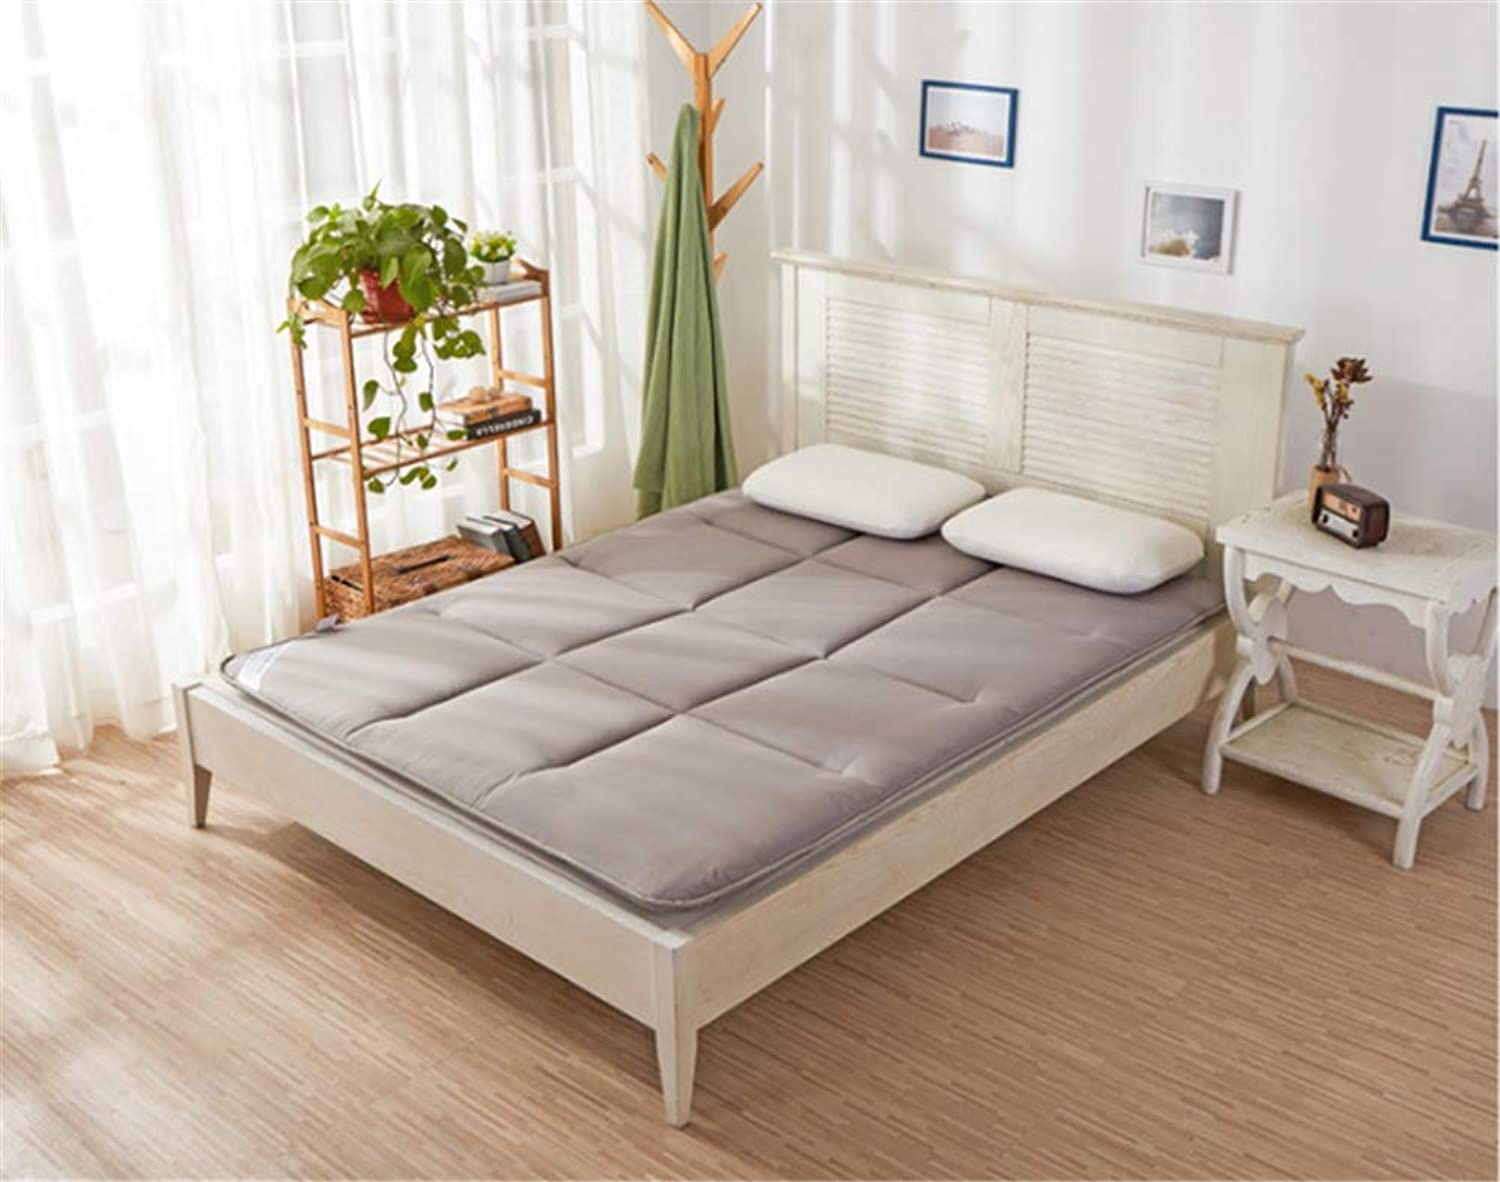 Padded Tatami Mattress,Foldable Mattress,Student Dormitory Double Single Bed Mattress,Sponge Soft Mattress,E,100  200cm